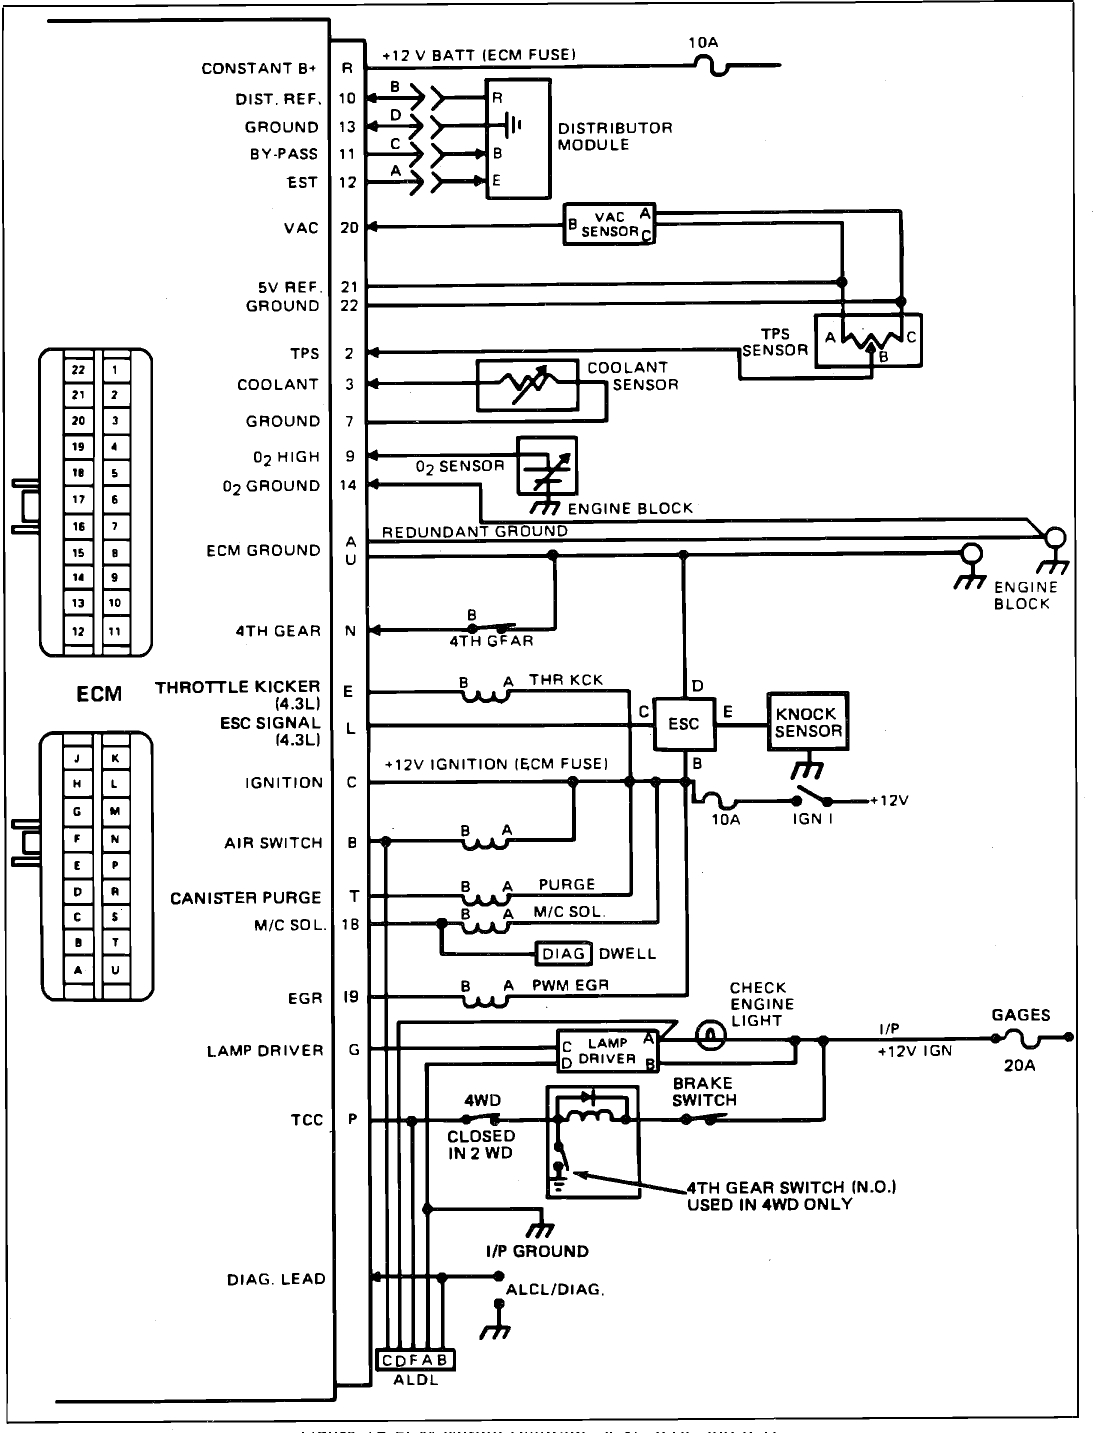 1990 Chevy G20 Wiring Diagram Will Be A Thing Gm Alternator 1988 1991 Chev Van Fuse Box 26 Images Power Window